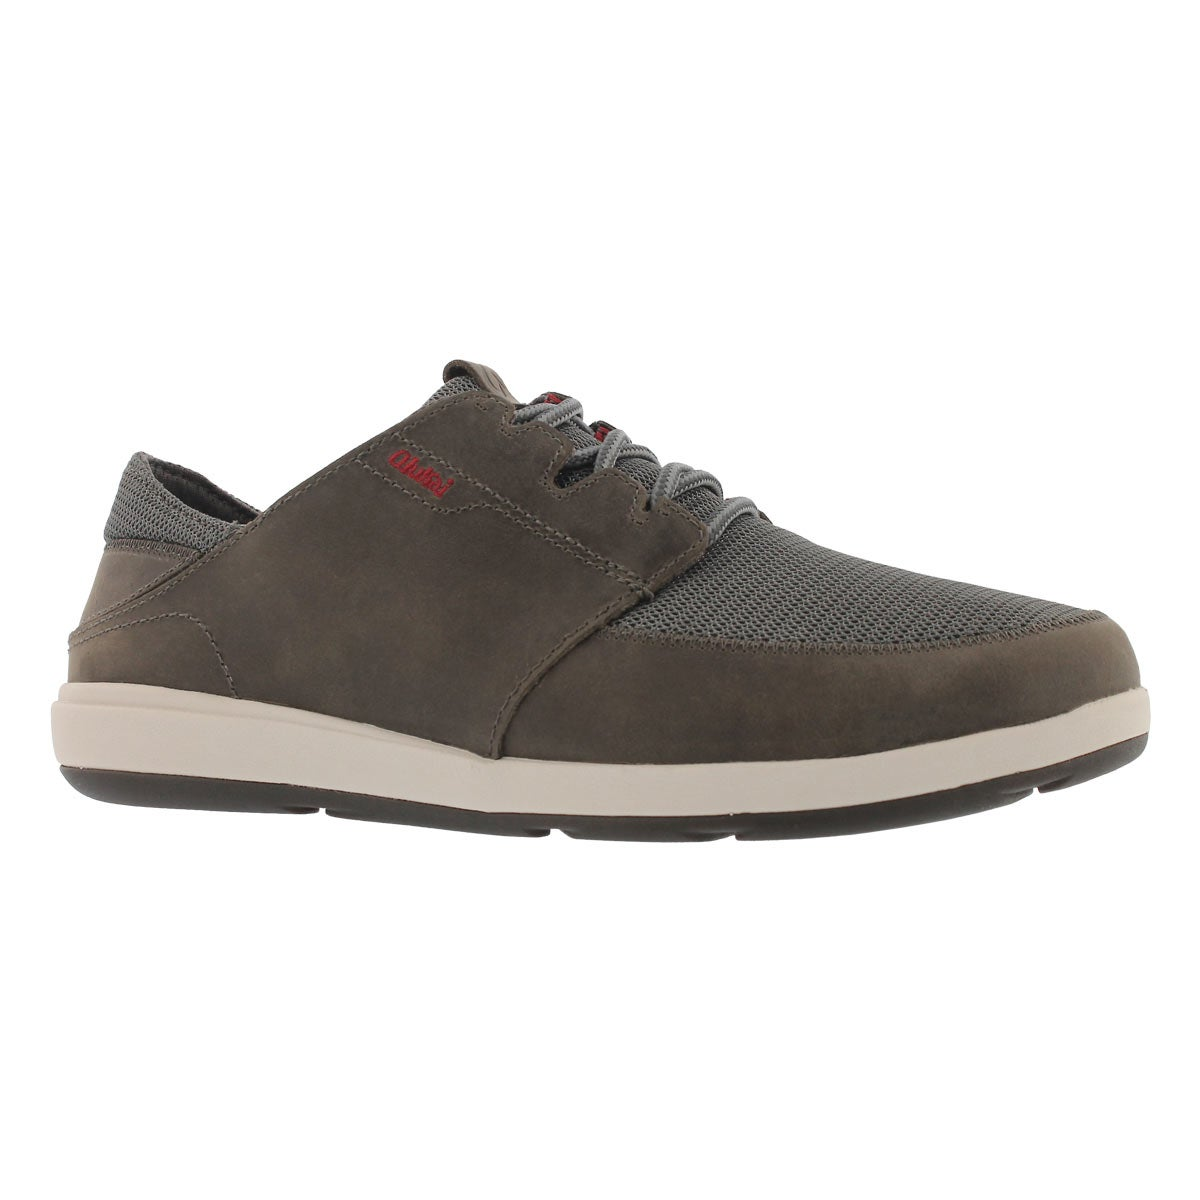 Men's MAKIA lace charcoal casual shoes